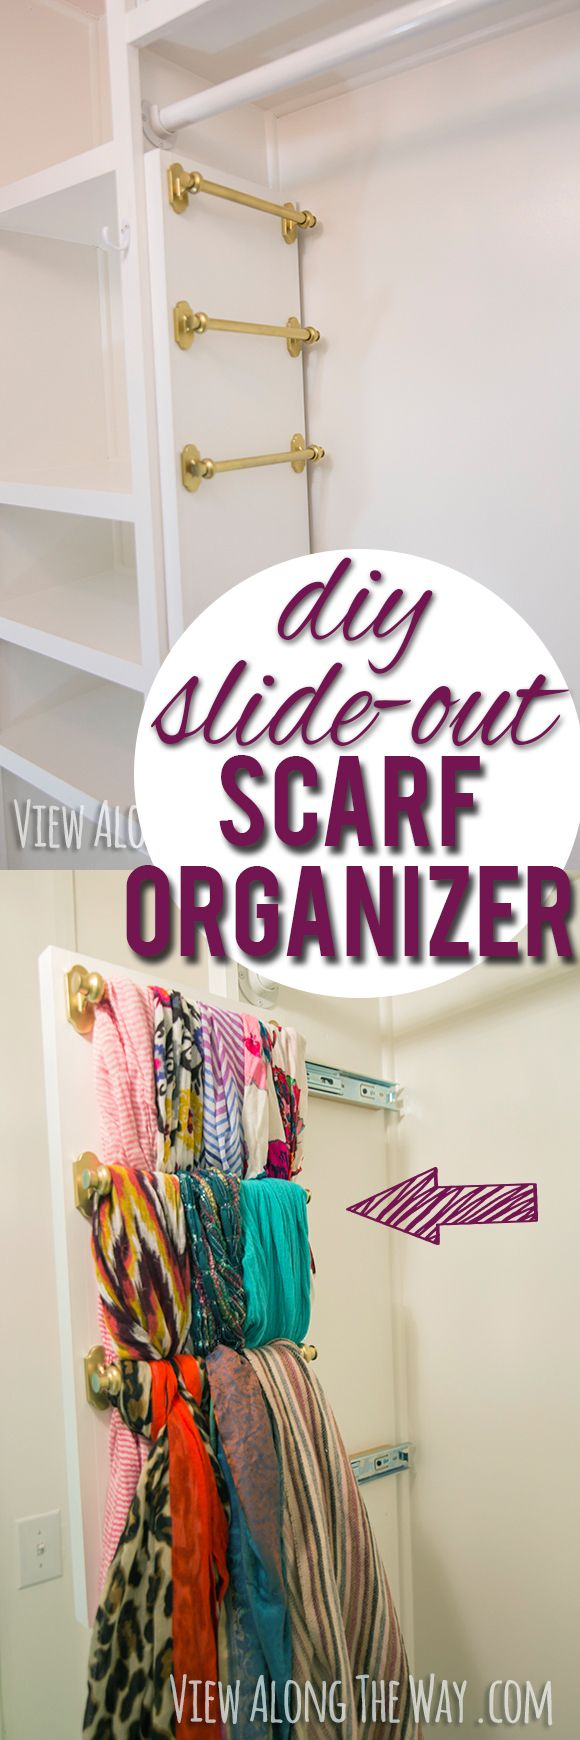 DIY Slide Out Scarf And Belt Organizers [Tutorials] : Every Girl Needs  This! Brilliant Way To Hang Your Scarves And Belts In Small Closet!